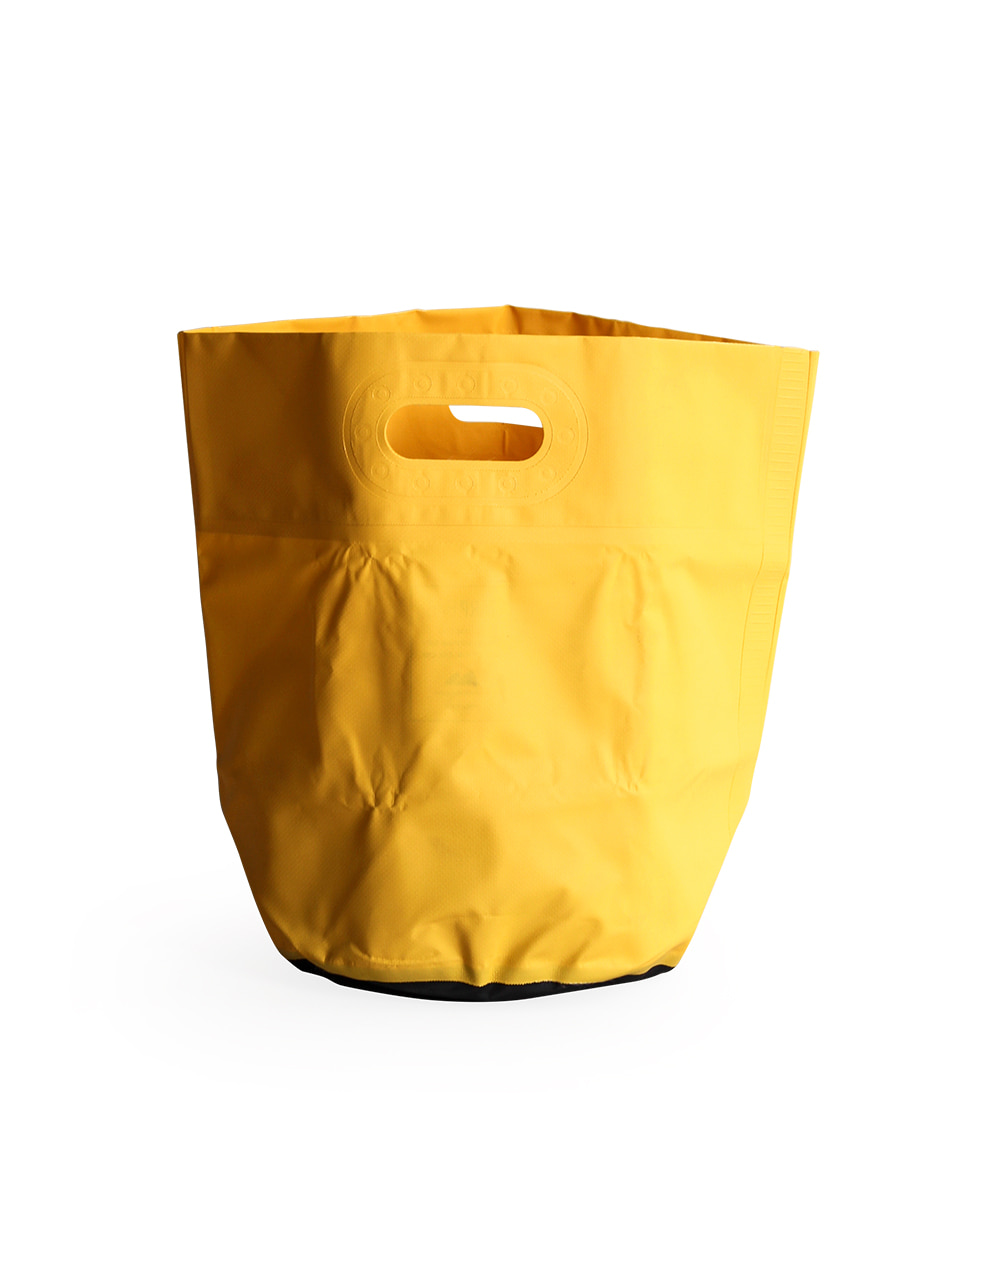 HIGHTIDE TARP BAG ROUND (2 sizes, 6 colors)